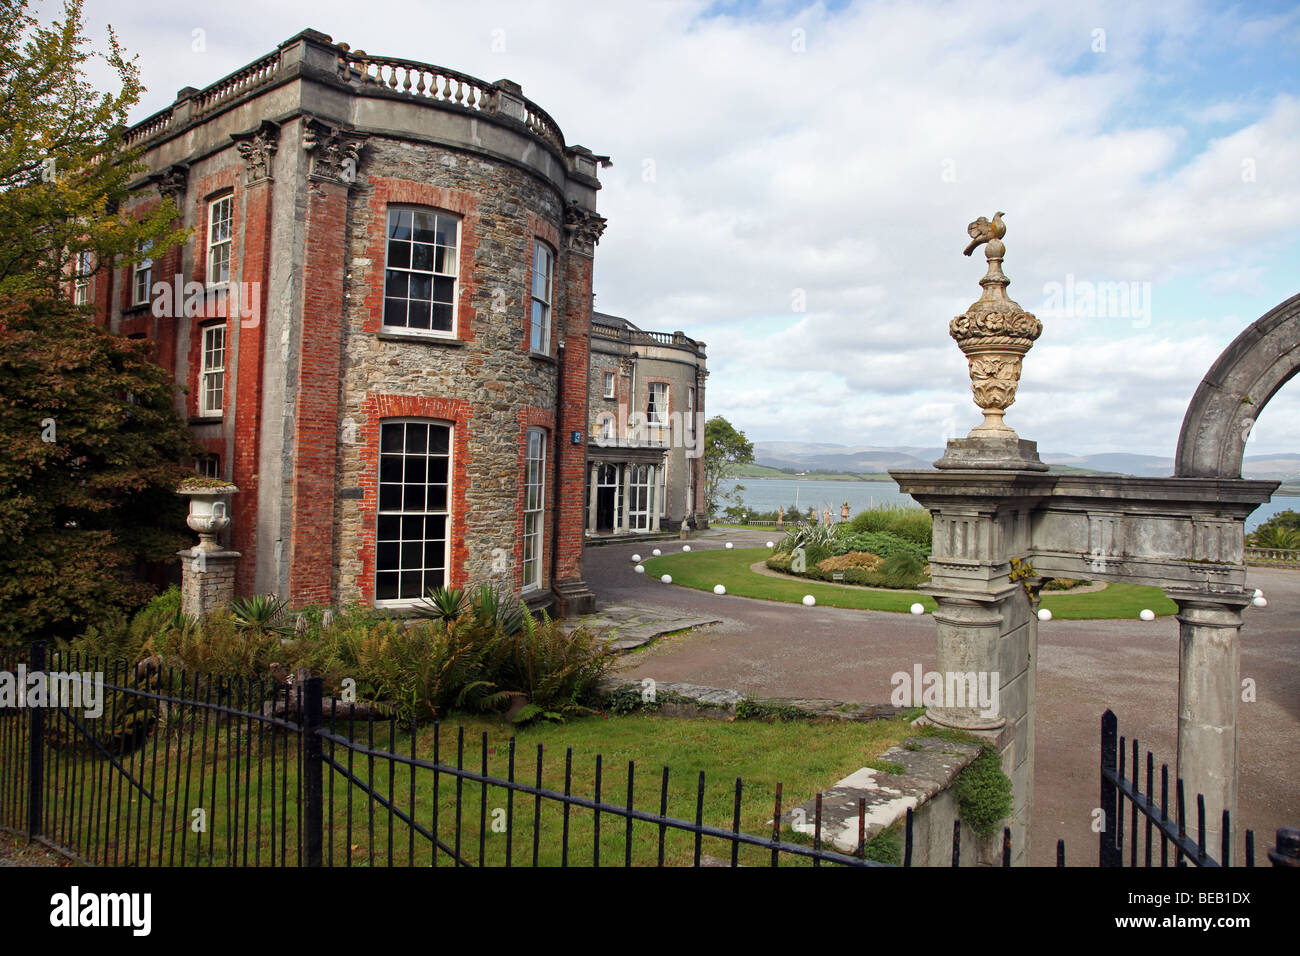 Bantry House, Irish stately home overlooking Bantry Bay, West Cork - Stock Image